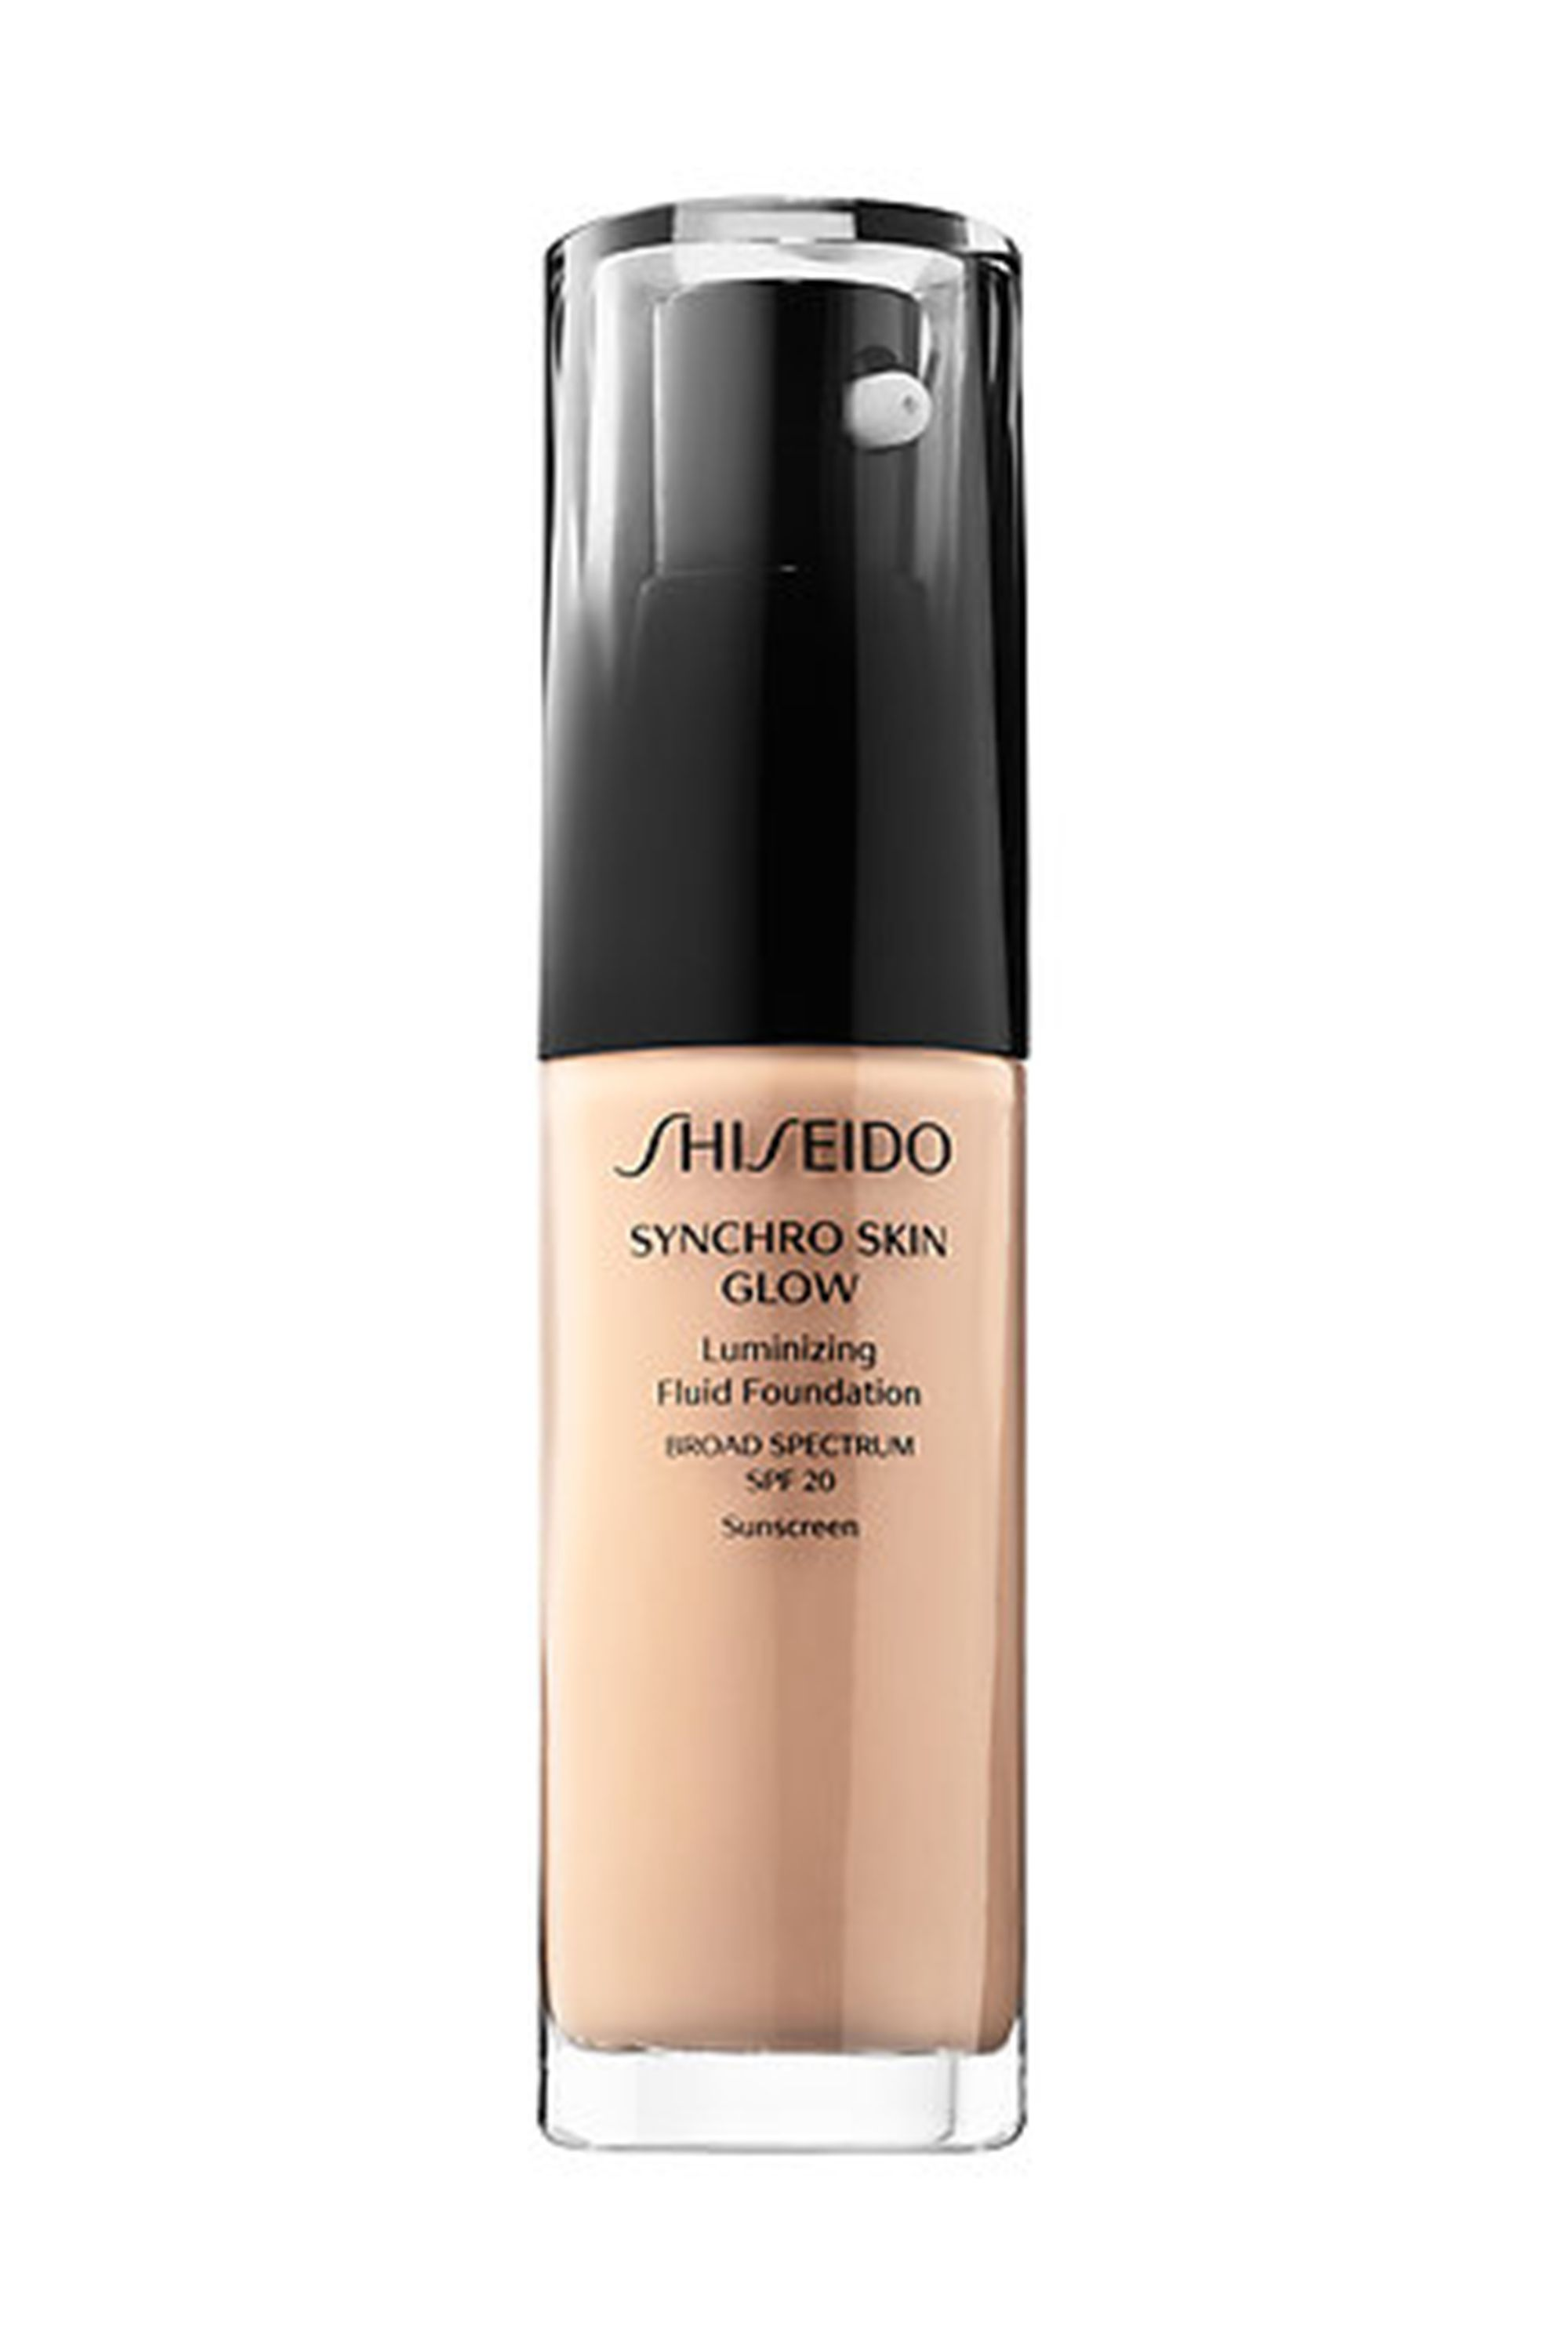 """<p>          This foundation is literally genius. Technology allows it to sense your skin tone and moisture levels and self-adjust to deliver exactly what you need to achieve complexion perfection.  <span class=""""redactor-invisible-space"""" data-verified=""""redactor"""" data-redactor-tag=""""span"""" data-redactor-class=""""redactor-invisible-space""""></span></p><p><span class=""""redactor-invisible-space"""" data-verified=""""redactor"""" data-redactor-tag=""""span"""" data-redactor-class=""""redactor-invisible-space"""">          <em data-redactor-tag=""""em"""" data-verified=""""redactor"""">$45,</em><a href=""""http://www.sephora.com/synchro-skin-glow-luminizing-fluid-foundation-broad-spectrum-spf-20-P417902"""" data-tracking-id=""""recirc-text-link""""><em data-redactor-tag=""""em"""" data-verified=""""redactor"""">sephora.com </em></a><span class=""""redactor-invisible-space"""" data-verified=""""redactor"""" data-redactor-tag=""""span"""" data-redactor-class=""""redactor-invisible-space""""><a href=""""http://www.sephora.com/synchro-skin-glow-luminizing-fluid-foundation-broad-spectrum-spf-20-P417902""""></a></span><br></span></p>"""